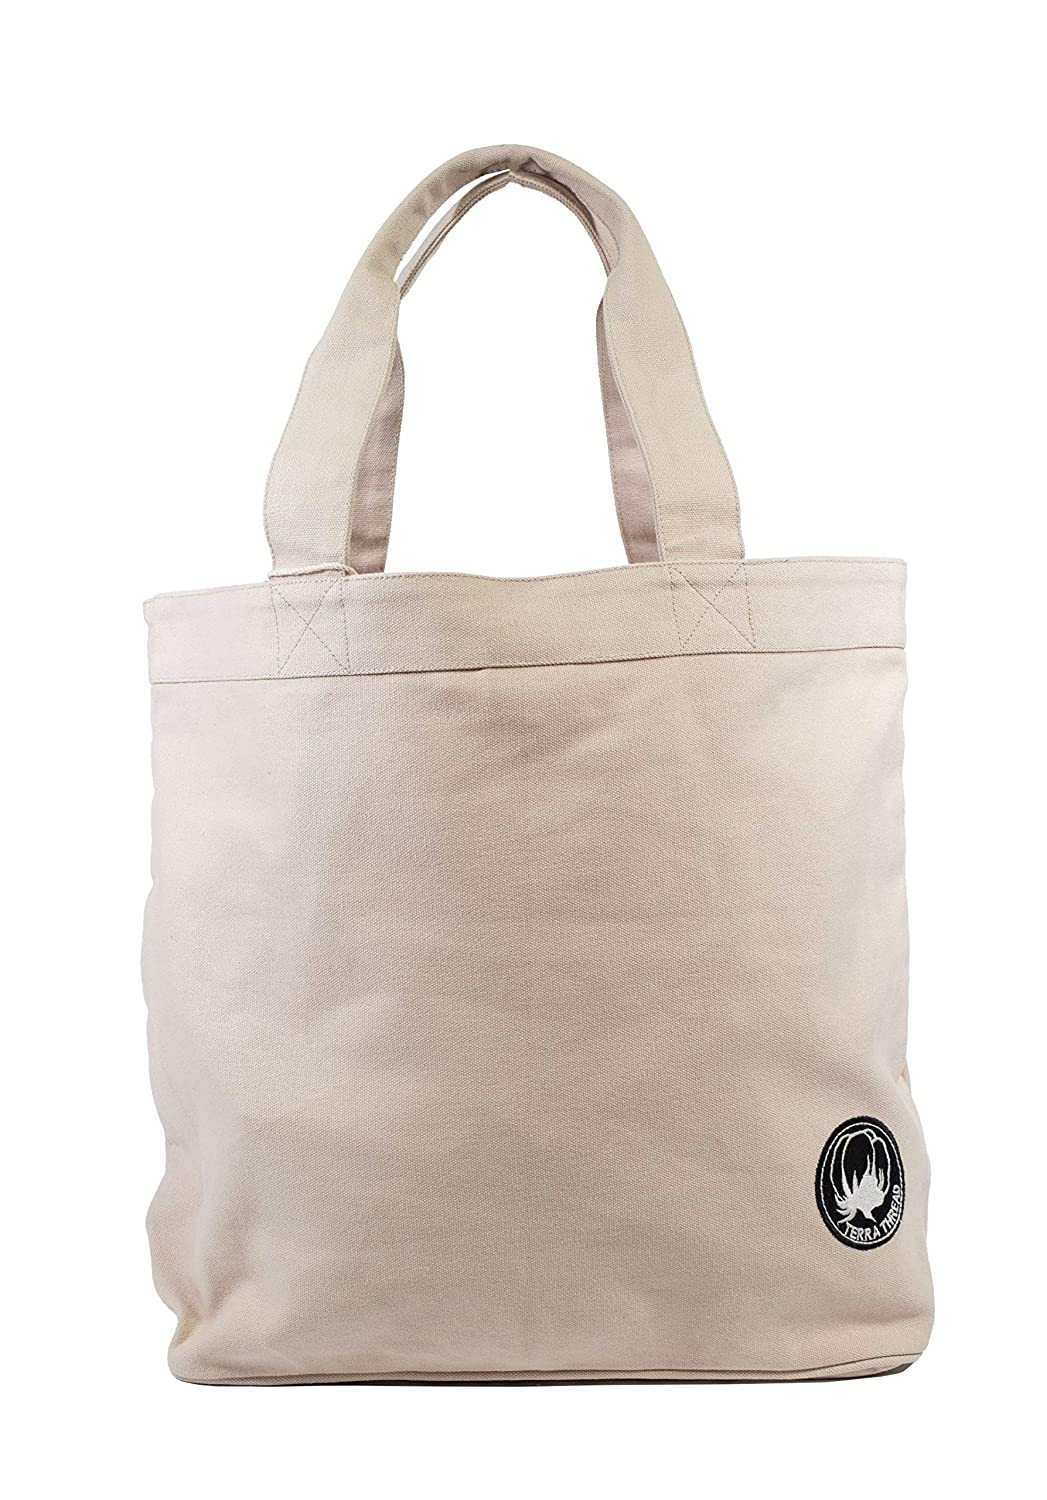 ef46fe3564e0 Tote Bag for Men. Tote Bag for Women. Big Tote Bags for Women. Tote Purse.  Organic Cotton Canvas Tote Bag. Shoulder Tote Bag. Work Tote. Weekend tote.